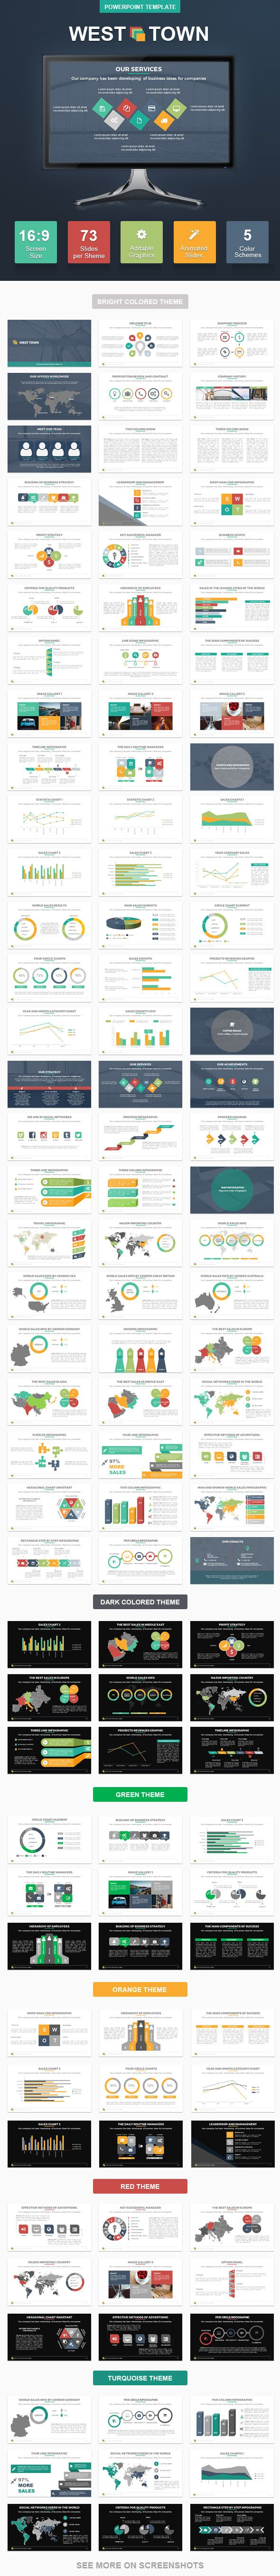 WestTown PowerPoint Presentation Template #design Download: http://graphicriver.net/item/westtown-powerpoint-presentation-template/11494206?ref=ksioks